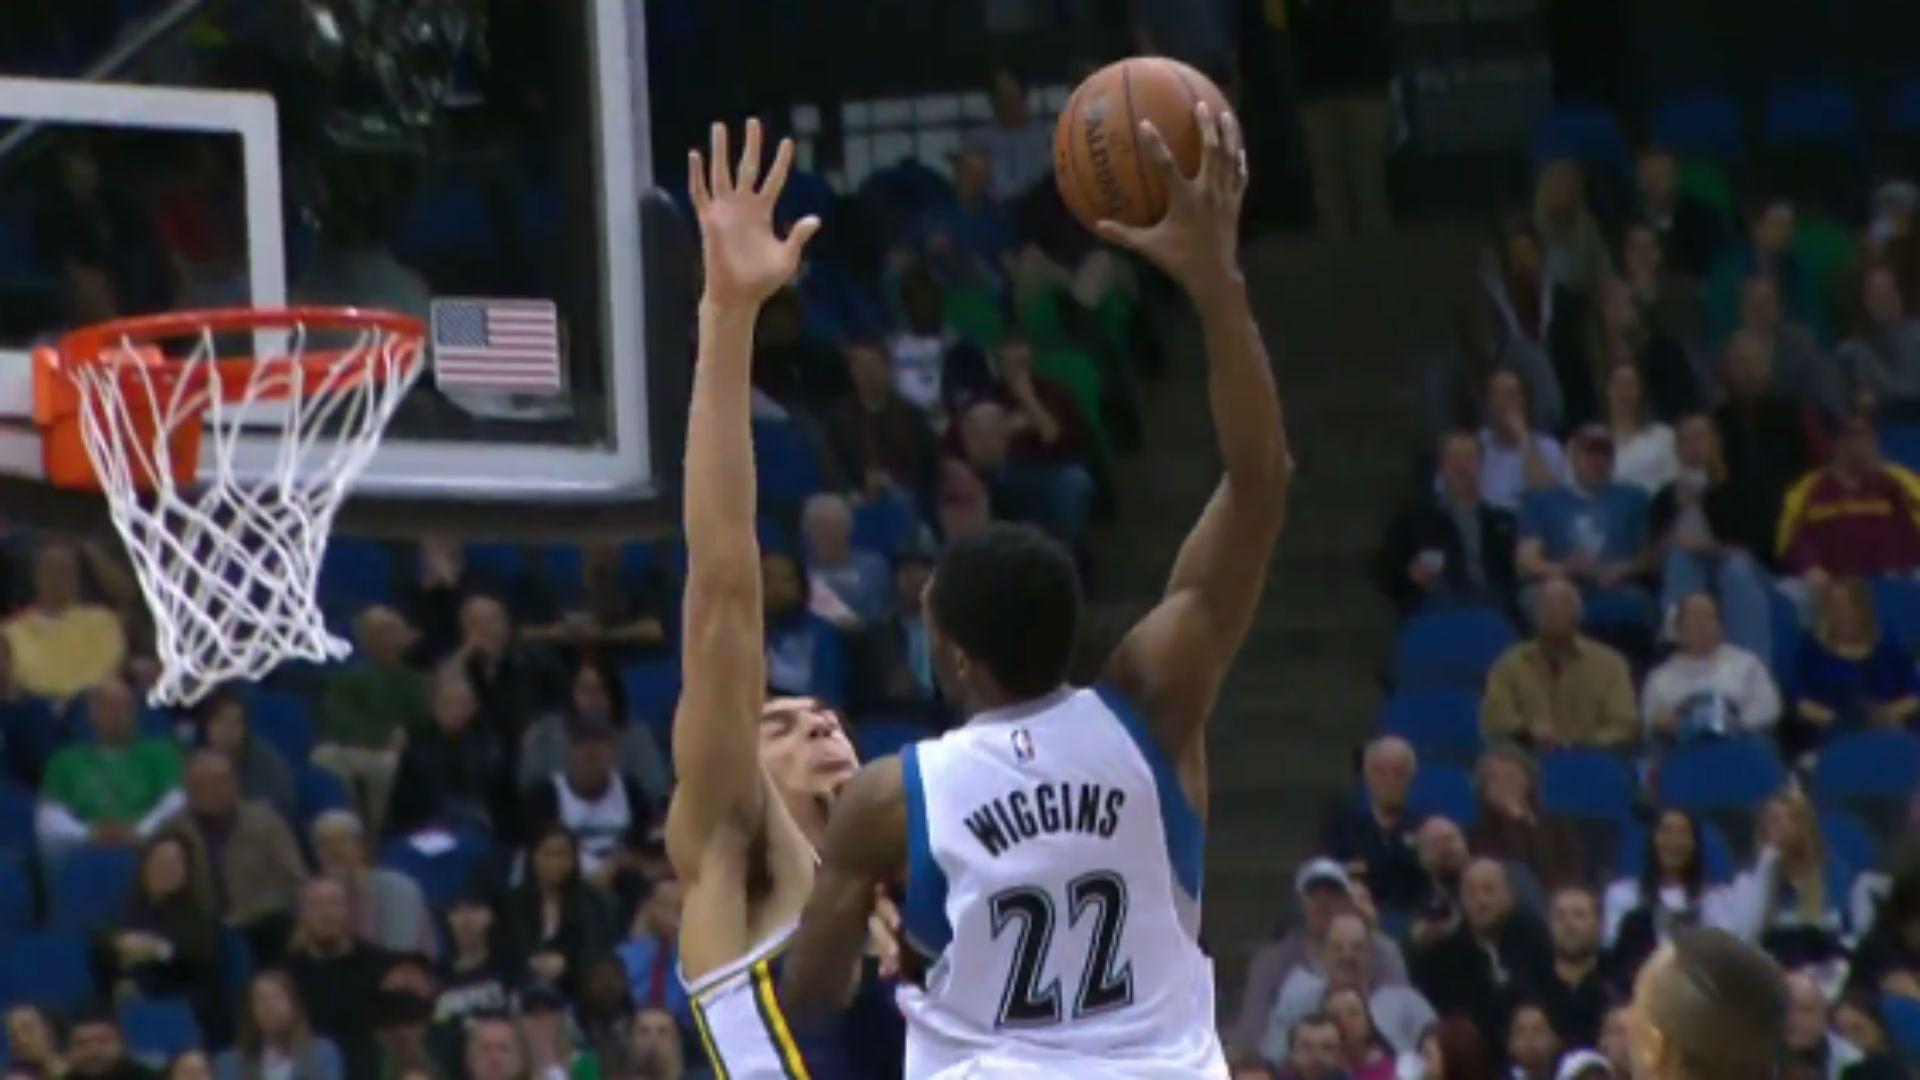 Andrew Wiggins dunks all over Rudy Gobert not once, but twice